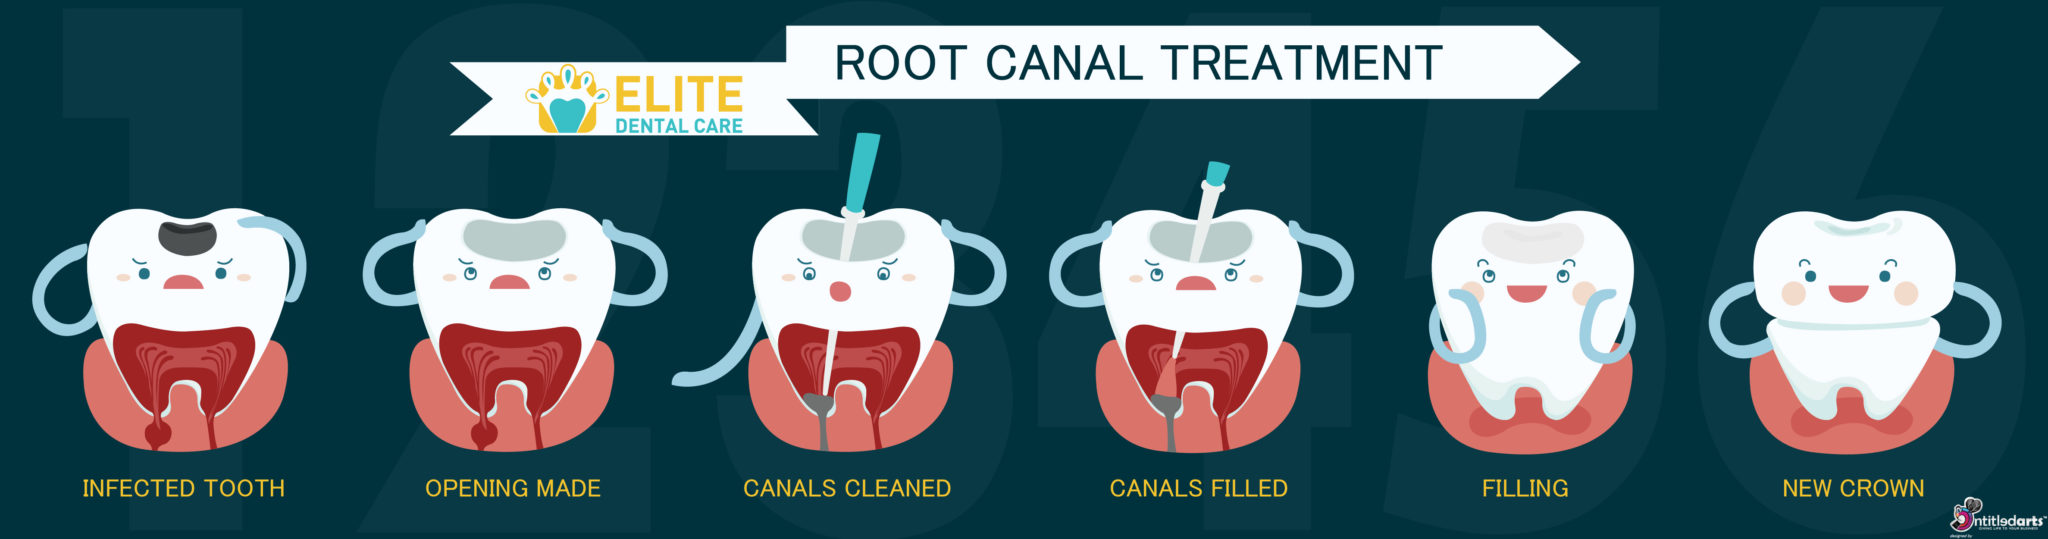 root canal treatment cost Archives - Elite Dental Care